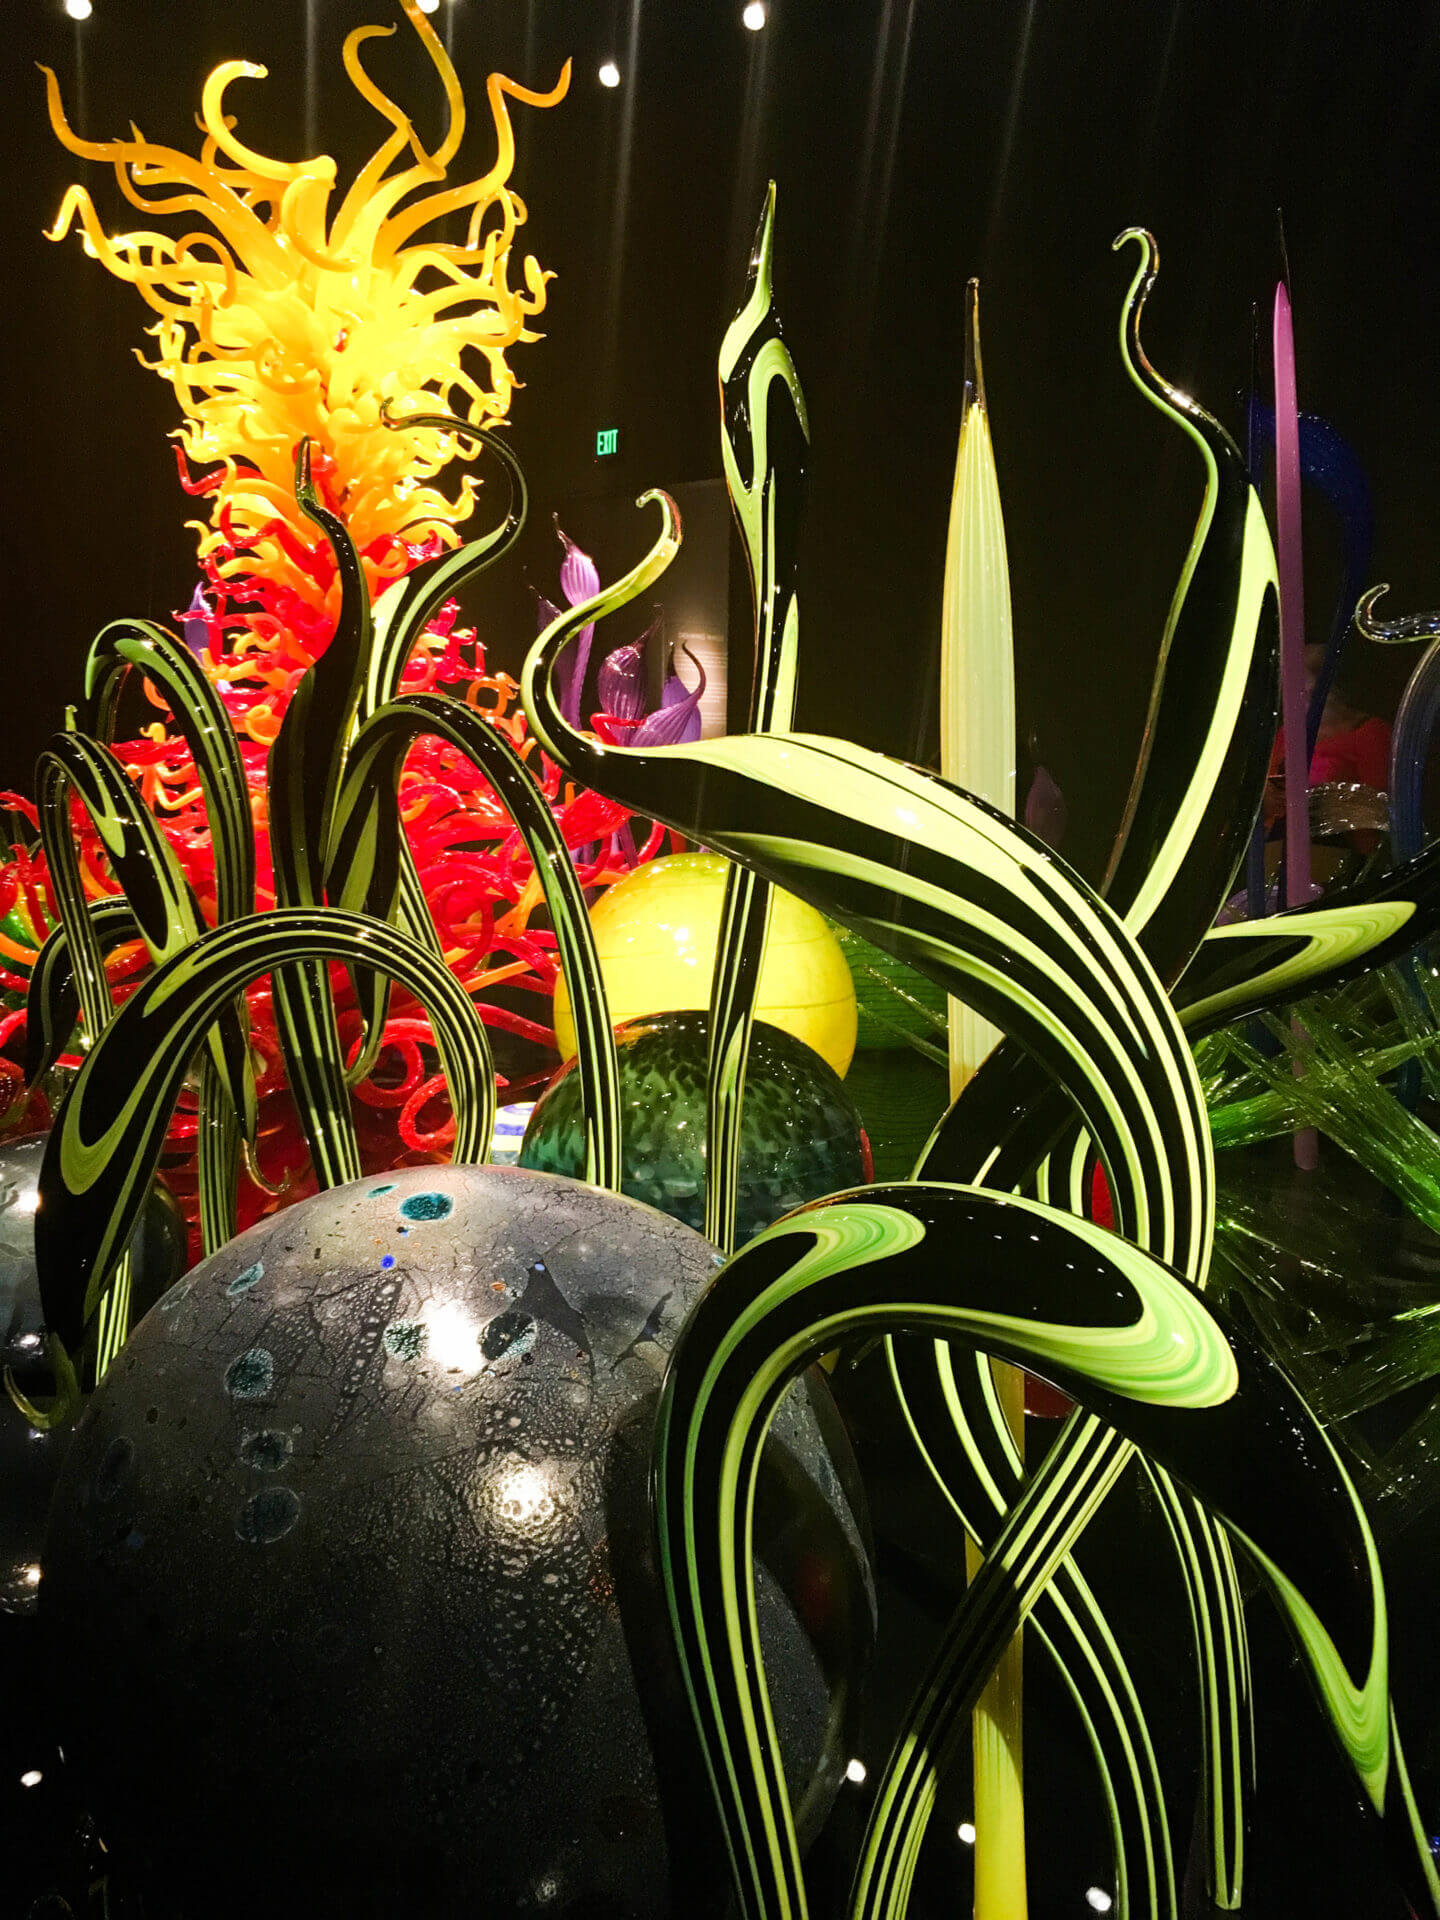 chihuly museum garden of glass